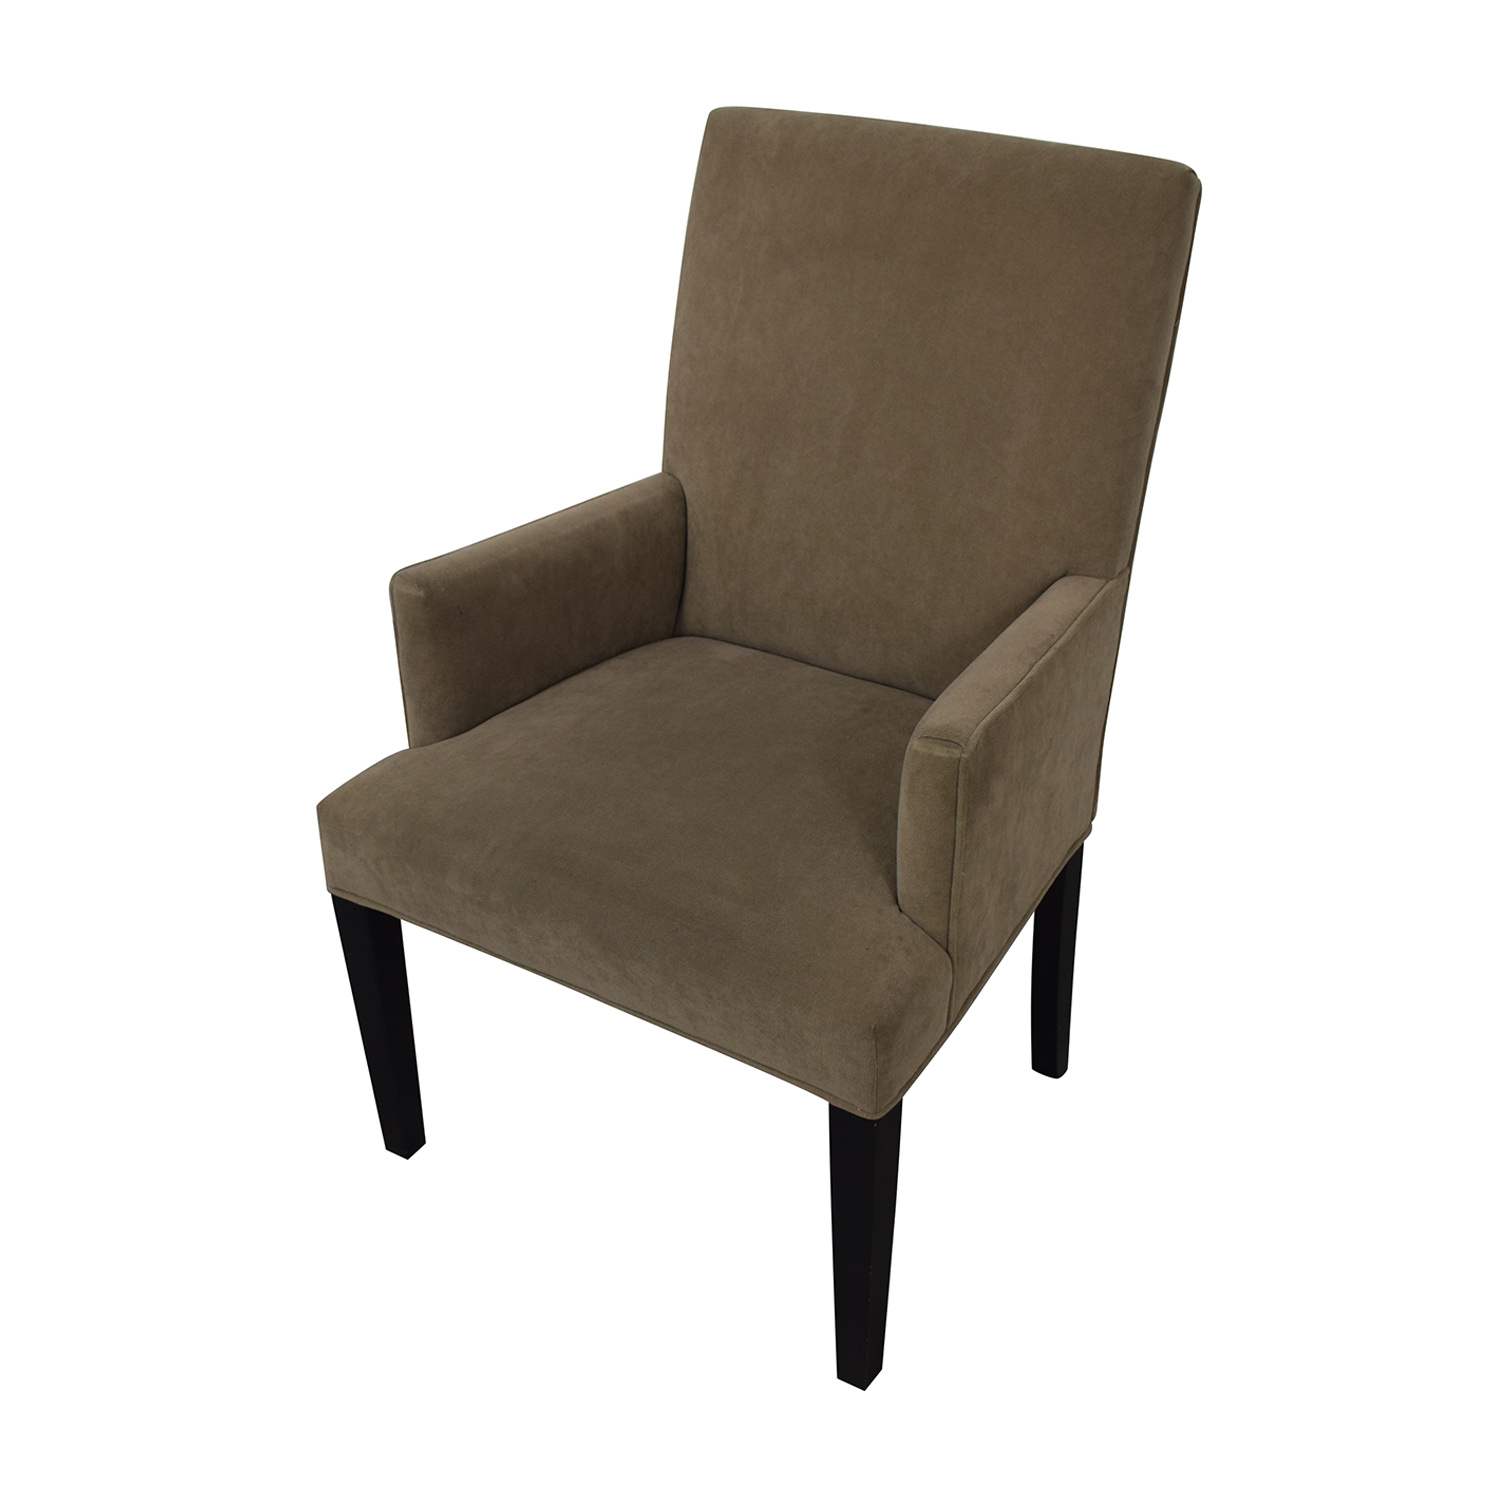 Crate & Barrel Crate & Barrel Dining Chairs price